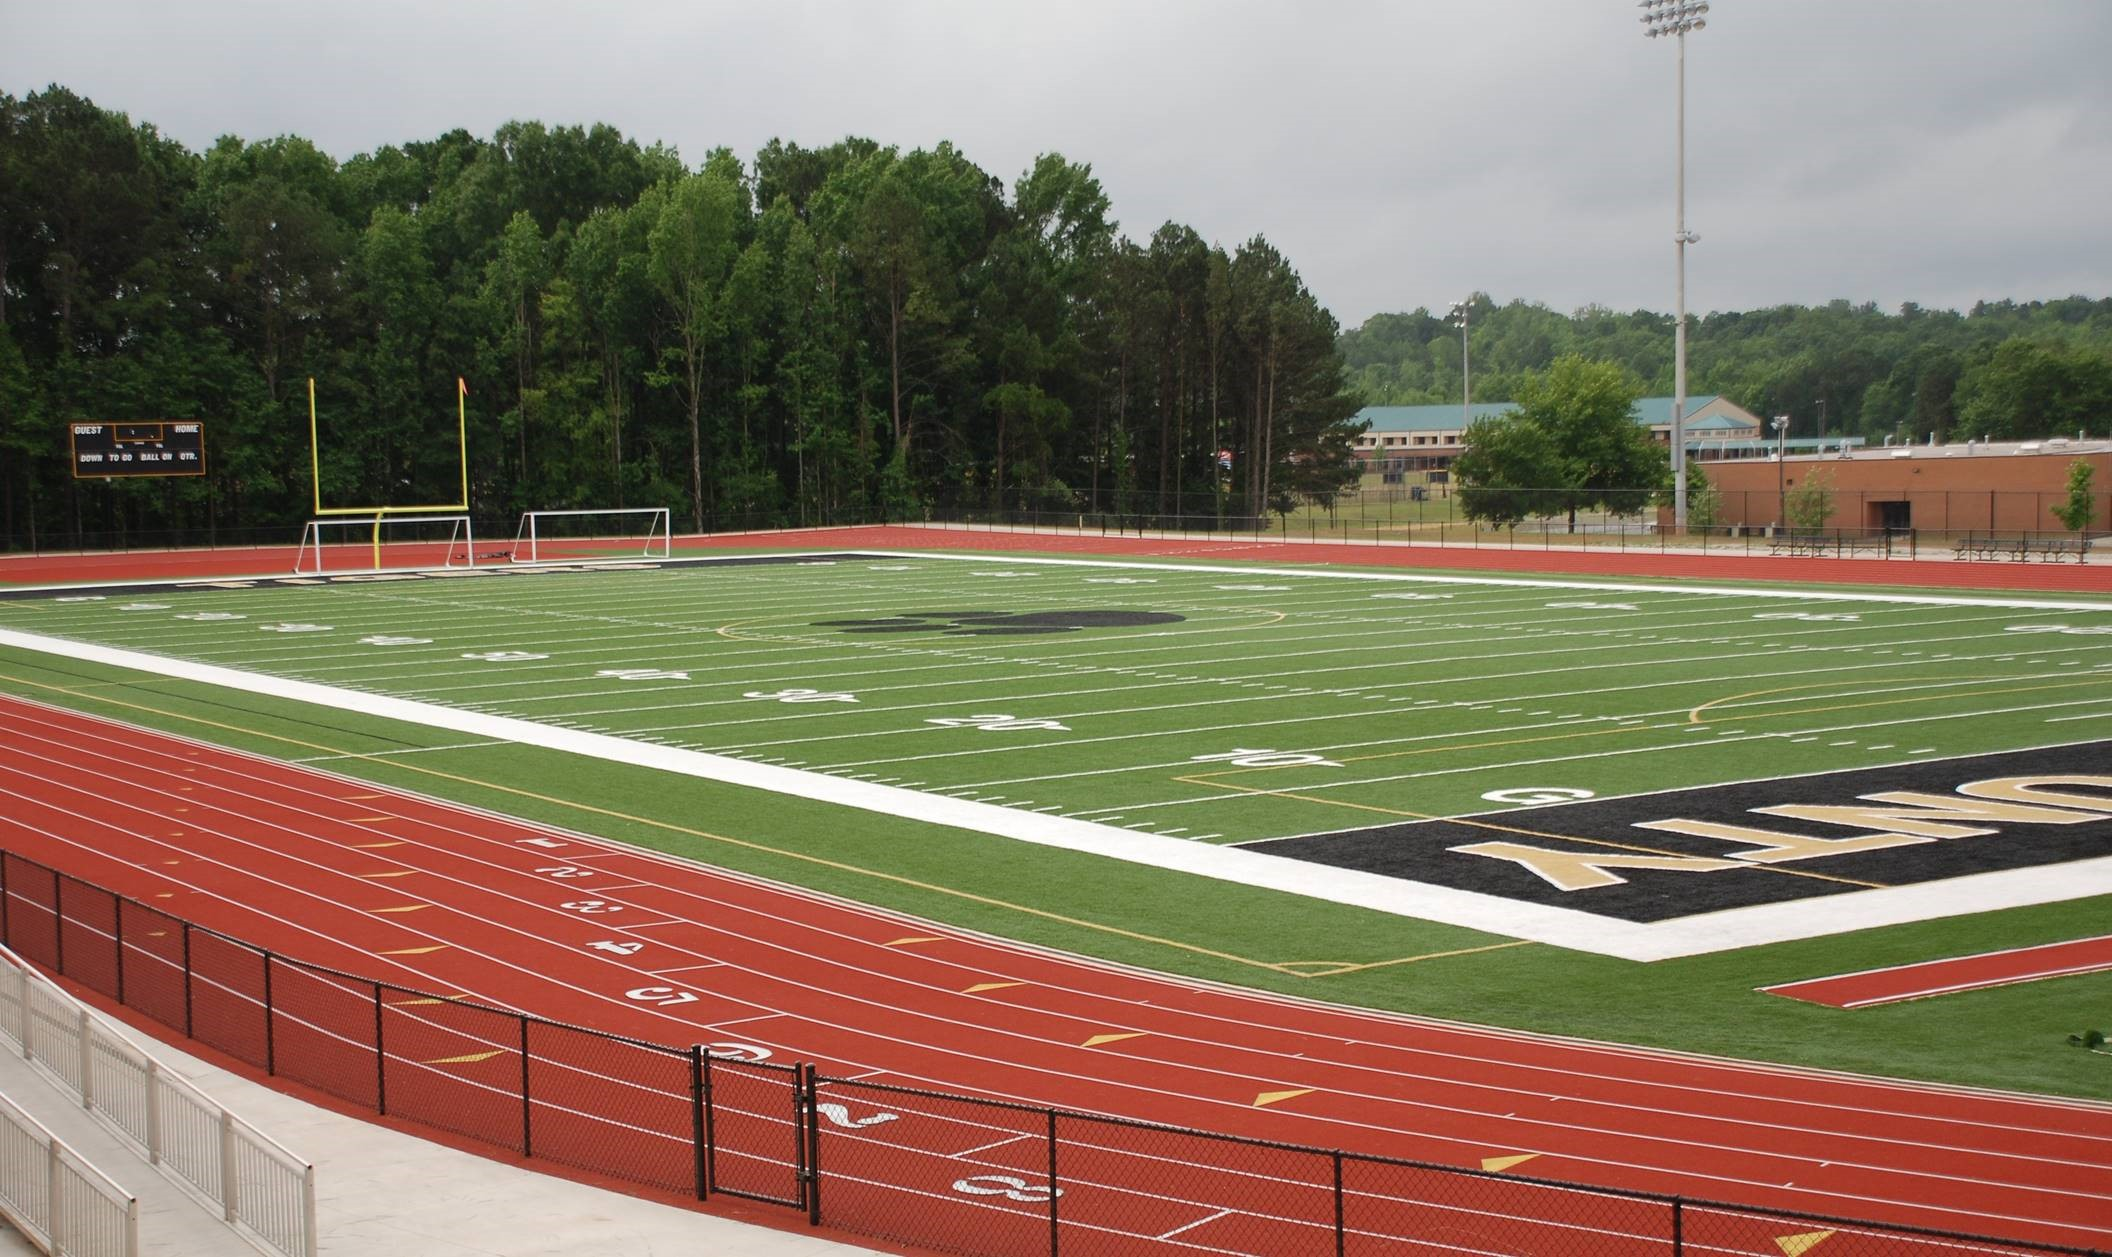 Athletic facilities - We are dedicated to communities throughout Georgia who hope to enhance their park and recreational space. Our aim is to create enriched lifestyles through community enhancement for more active living. As a full-service recreational contractor, we have completed over $500 million in construction projects, which includes athletic fields, tennis complexes, parks and trails, hardscapes and design build projects. We are proud members of The American Sportsbuilders Association, The National Recreation and Park Association, and Atlanta's own Park Pride.